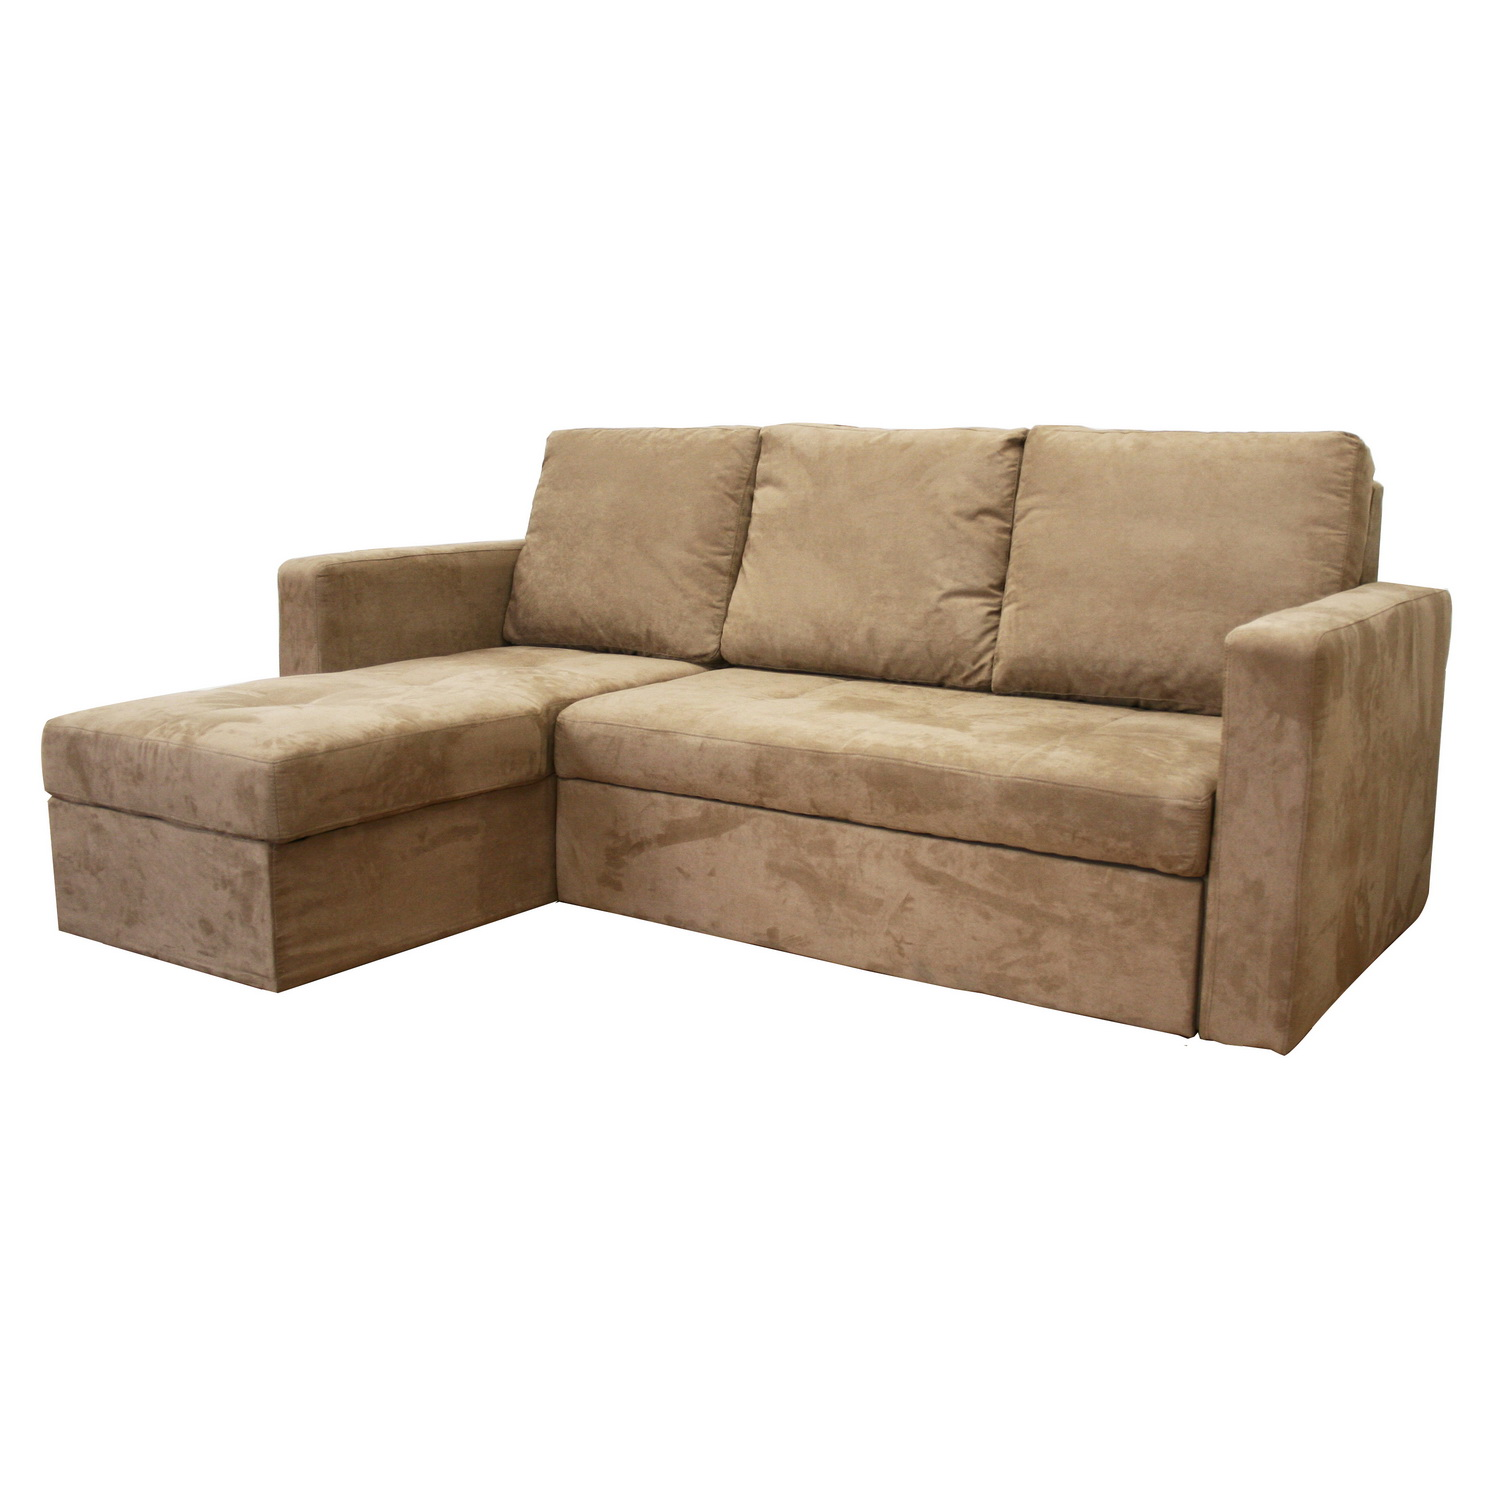 Sofas loveseats Loveseat sofa bed